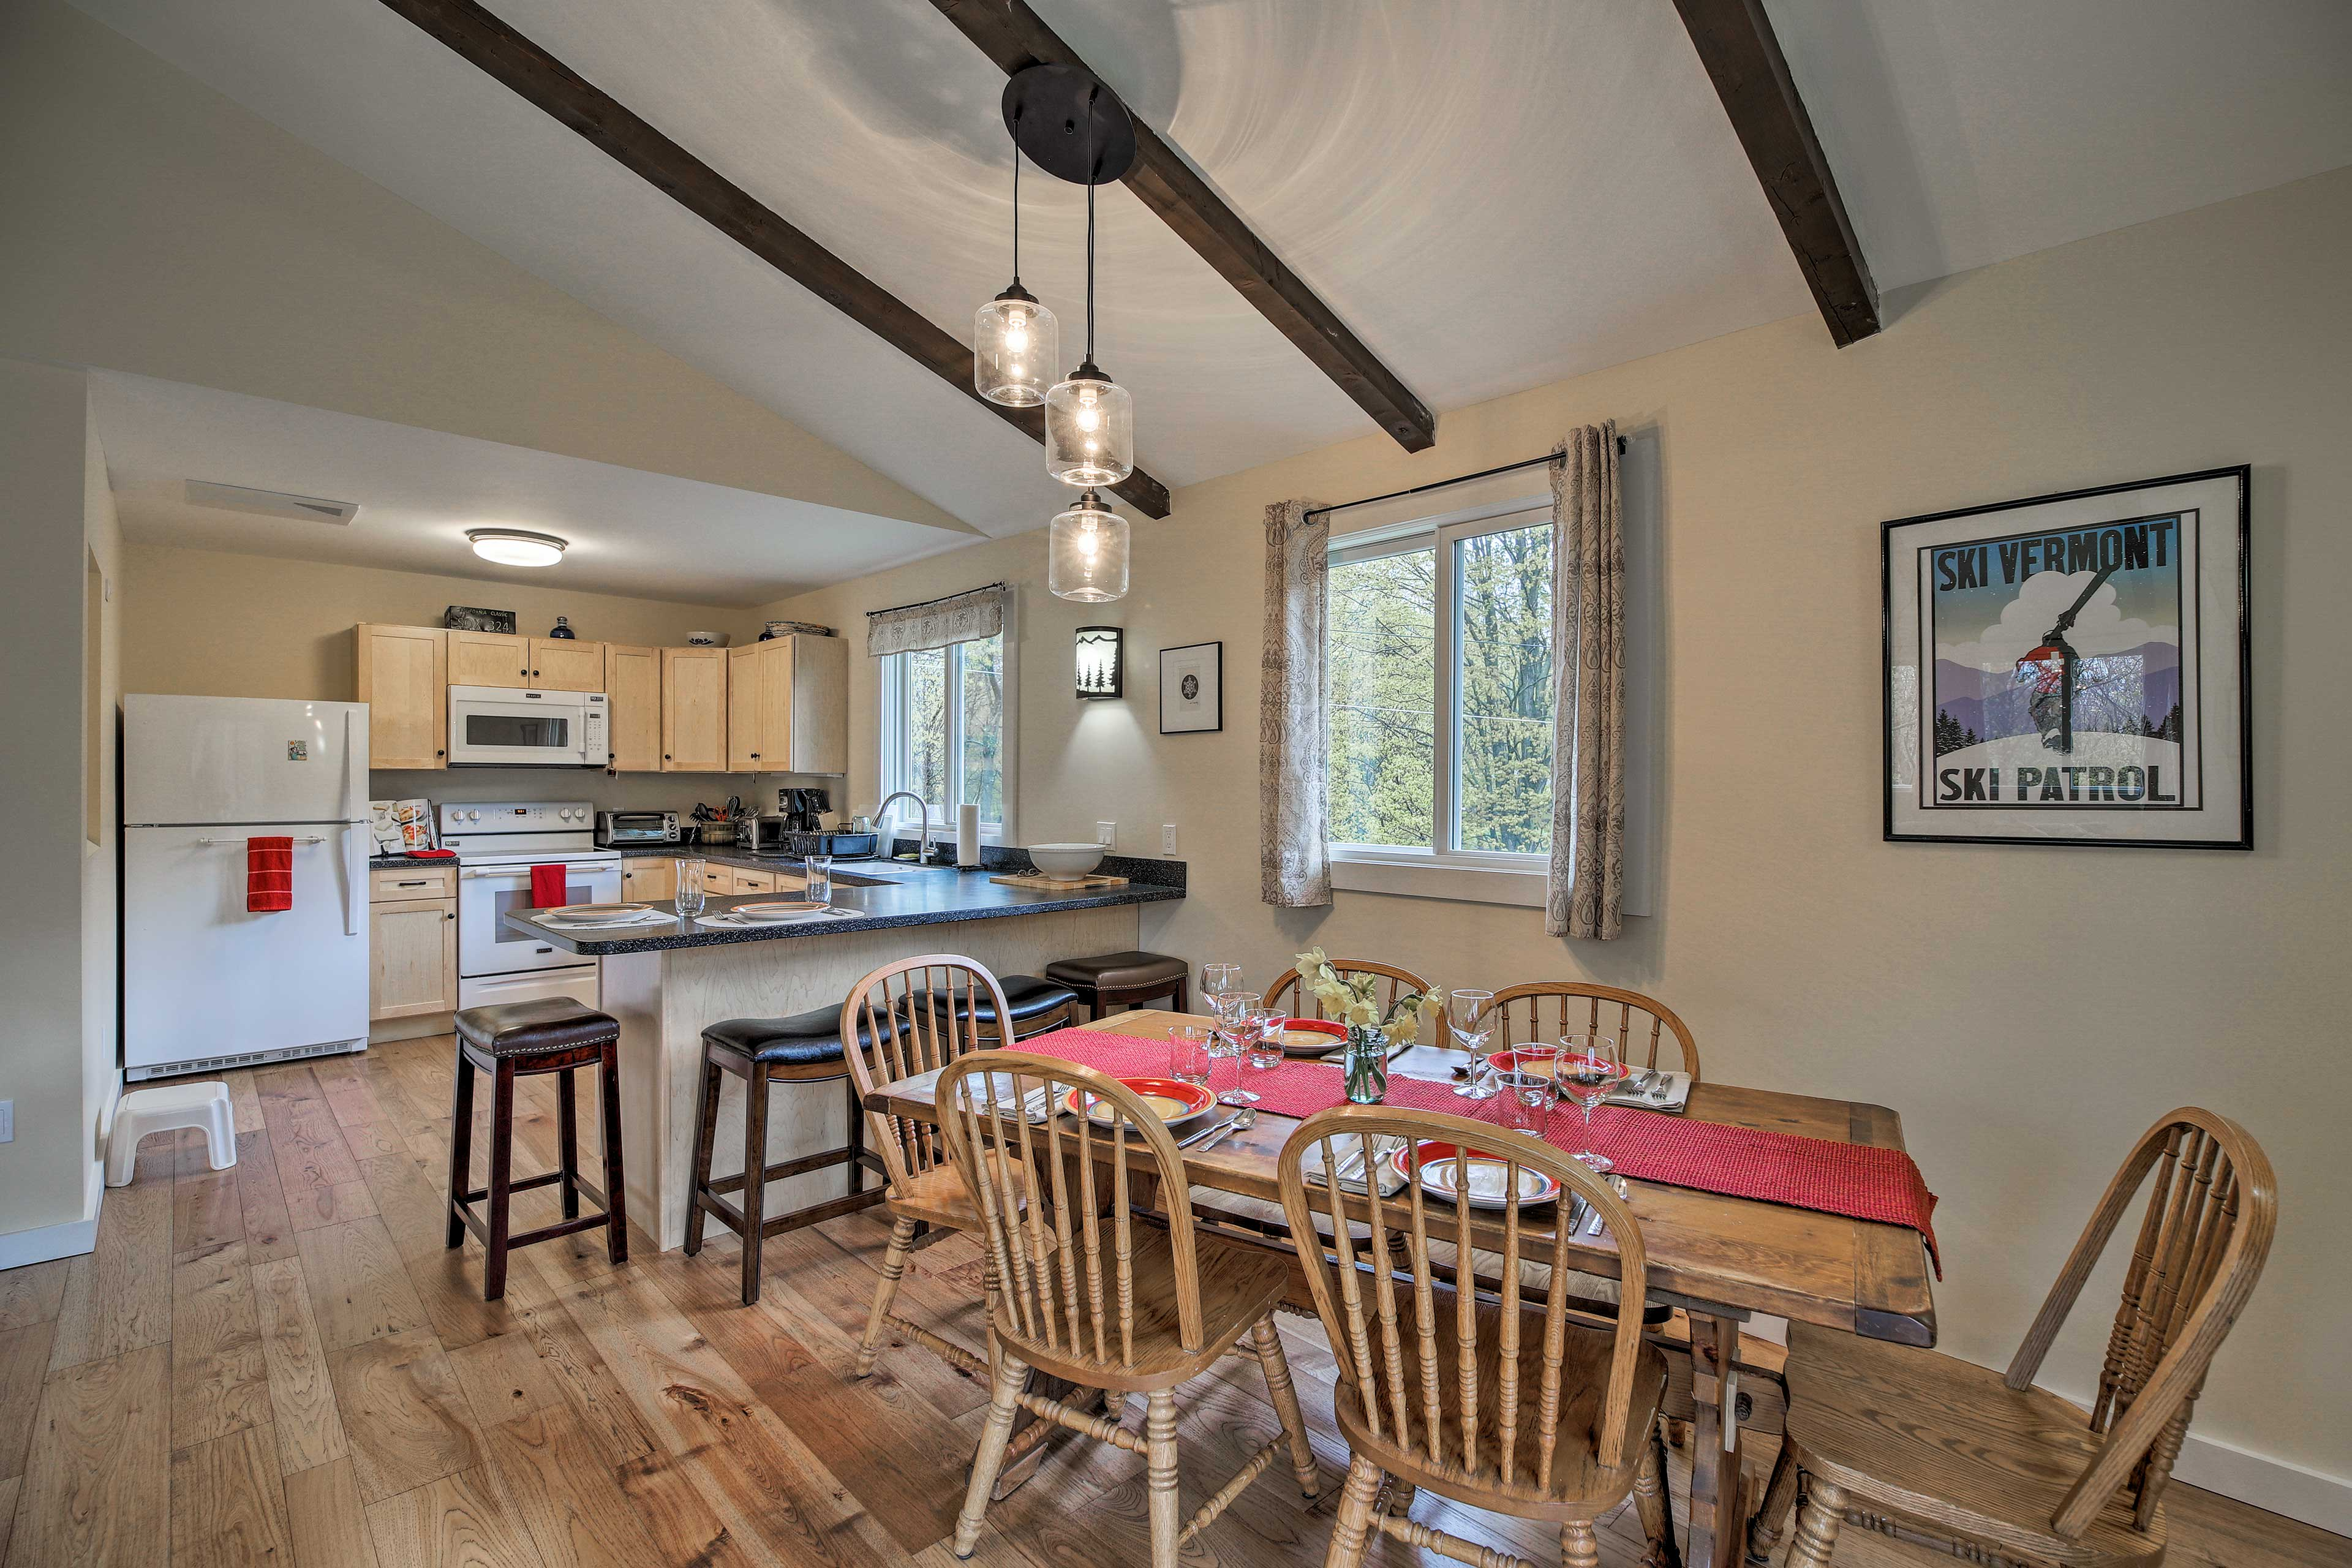 Set the dining table for 6 or grab a seat at the breakfast bar.